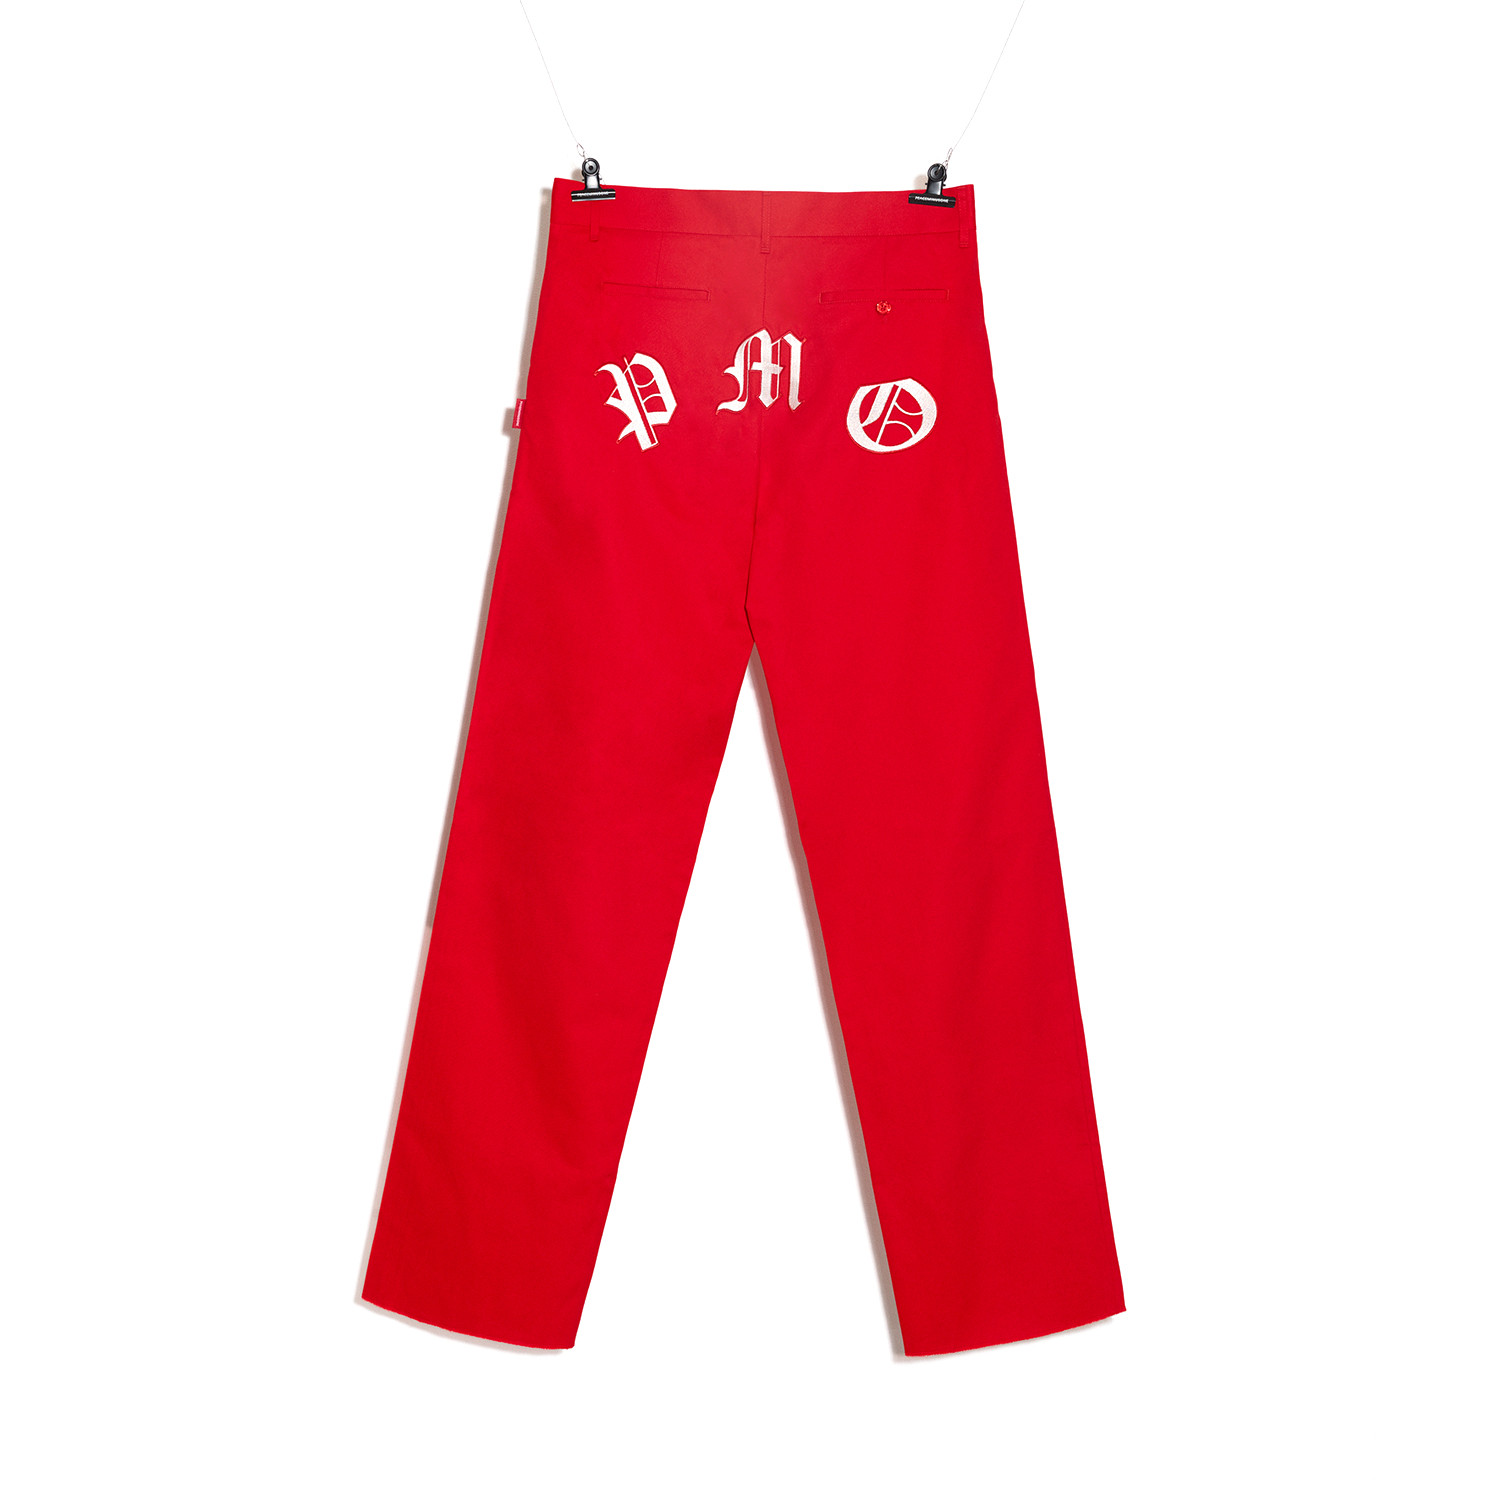 PMO WORK PANTS #1 RED